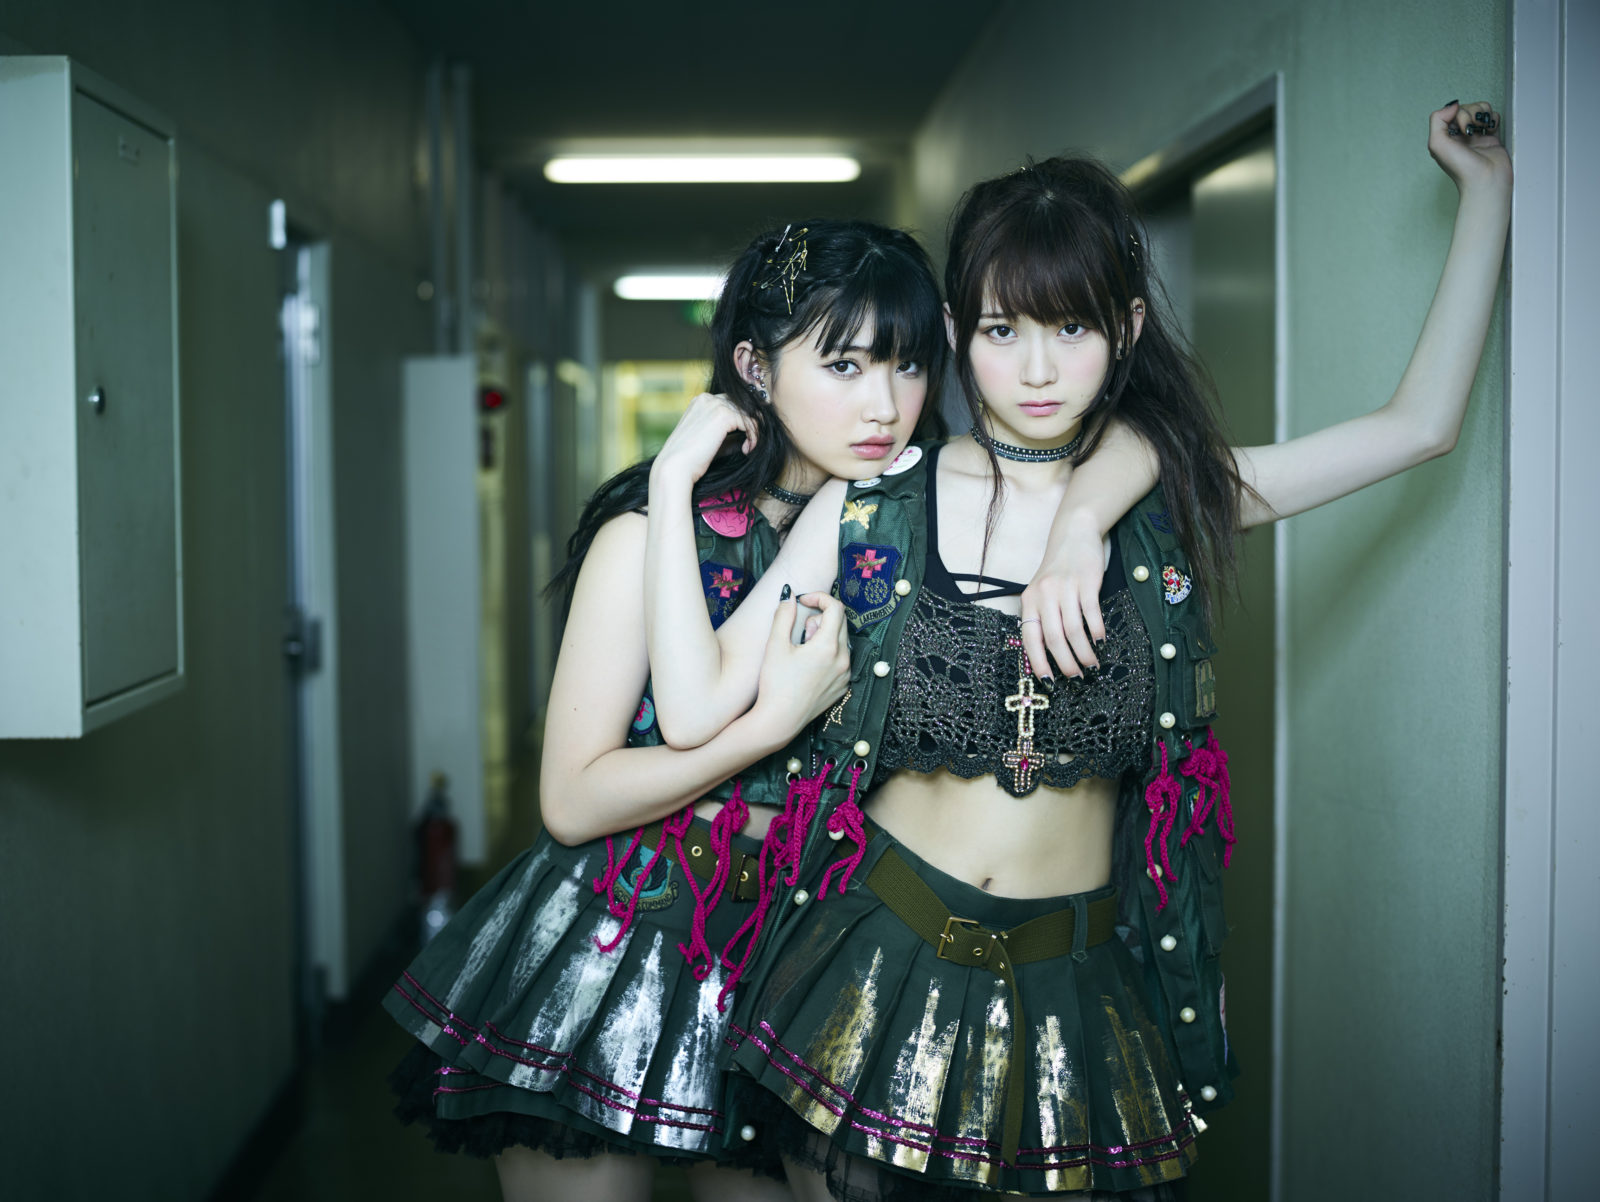 The Idol Formerly Known As LADYBABY 3rdシングルリリース発表&最新ビジュアル公開サムネイル画像!